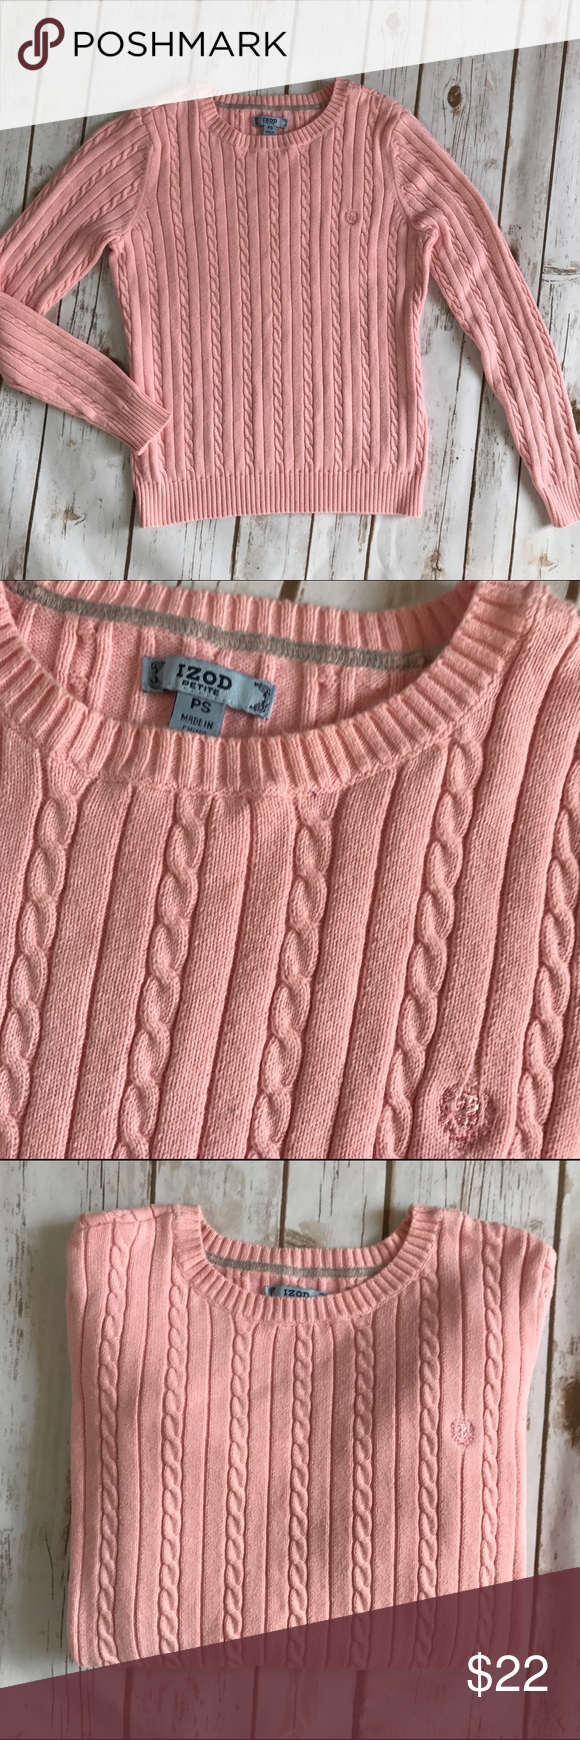 Izod pink cable knit sweater 💜 | More Cable knit sweaters ideas